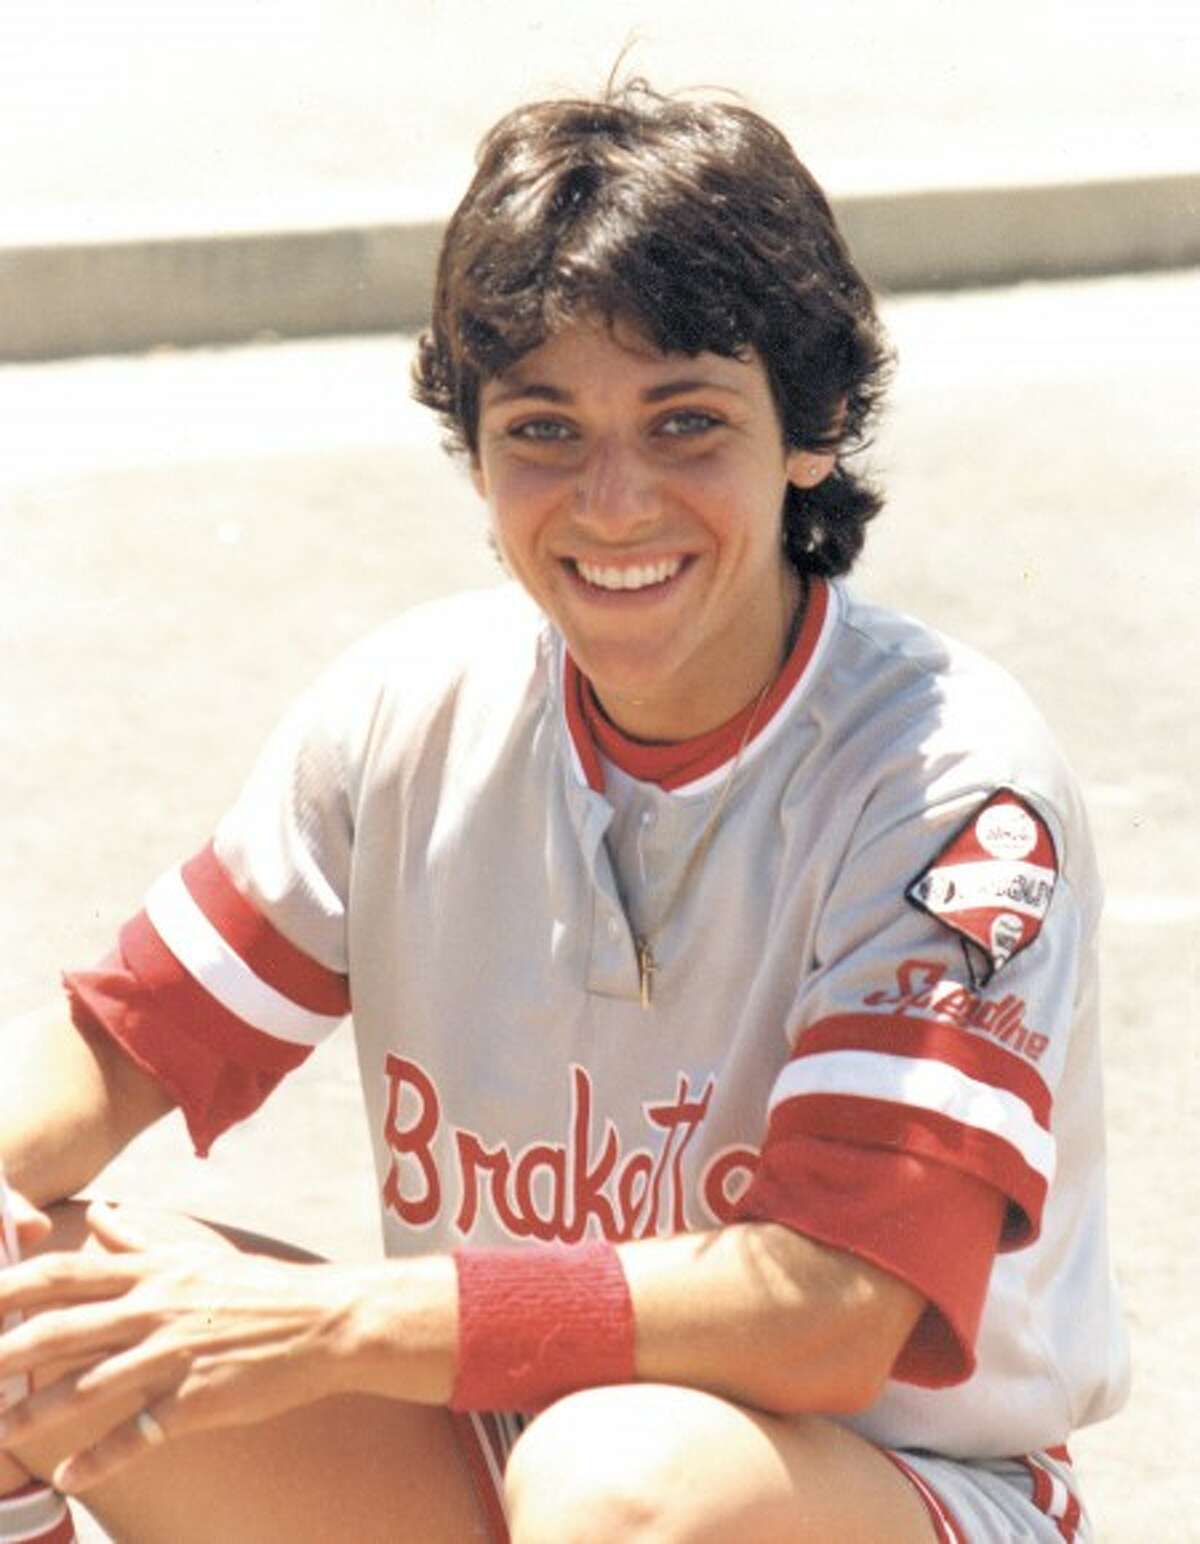 Contributed photo - Allyson Rioux, who passed away in 1989 at the age of 27, has been nominated for the ASA National Hall of Fame.